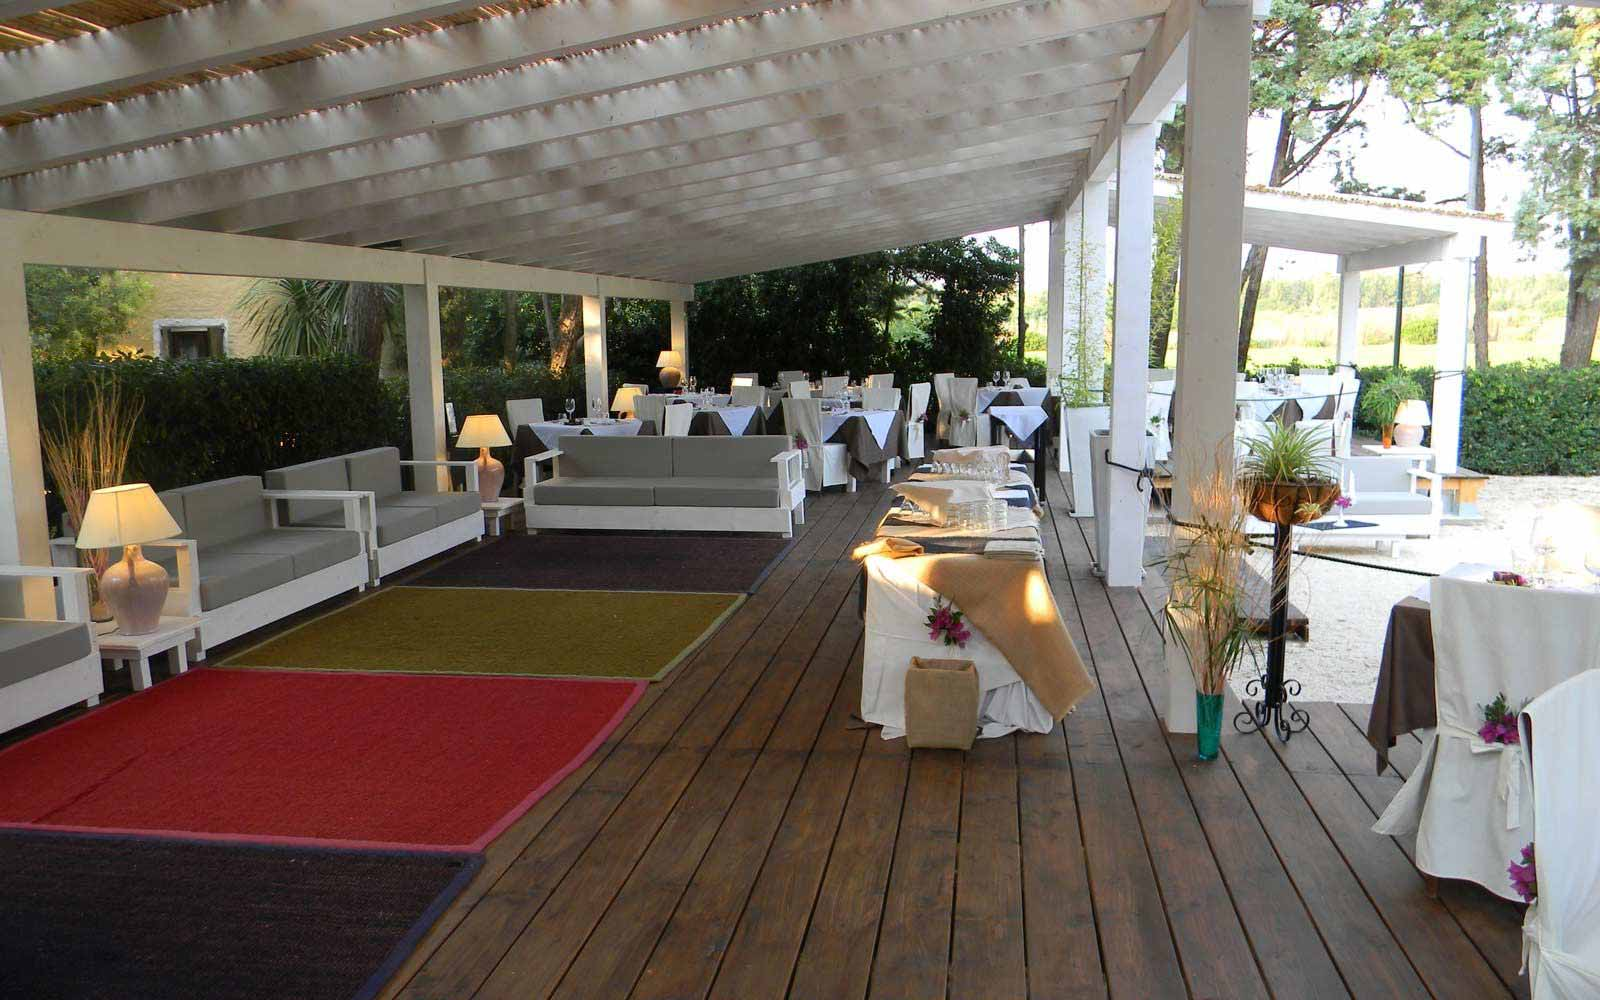 'Al Fresco' dining at Is Benas Country Lodge